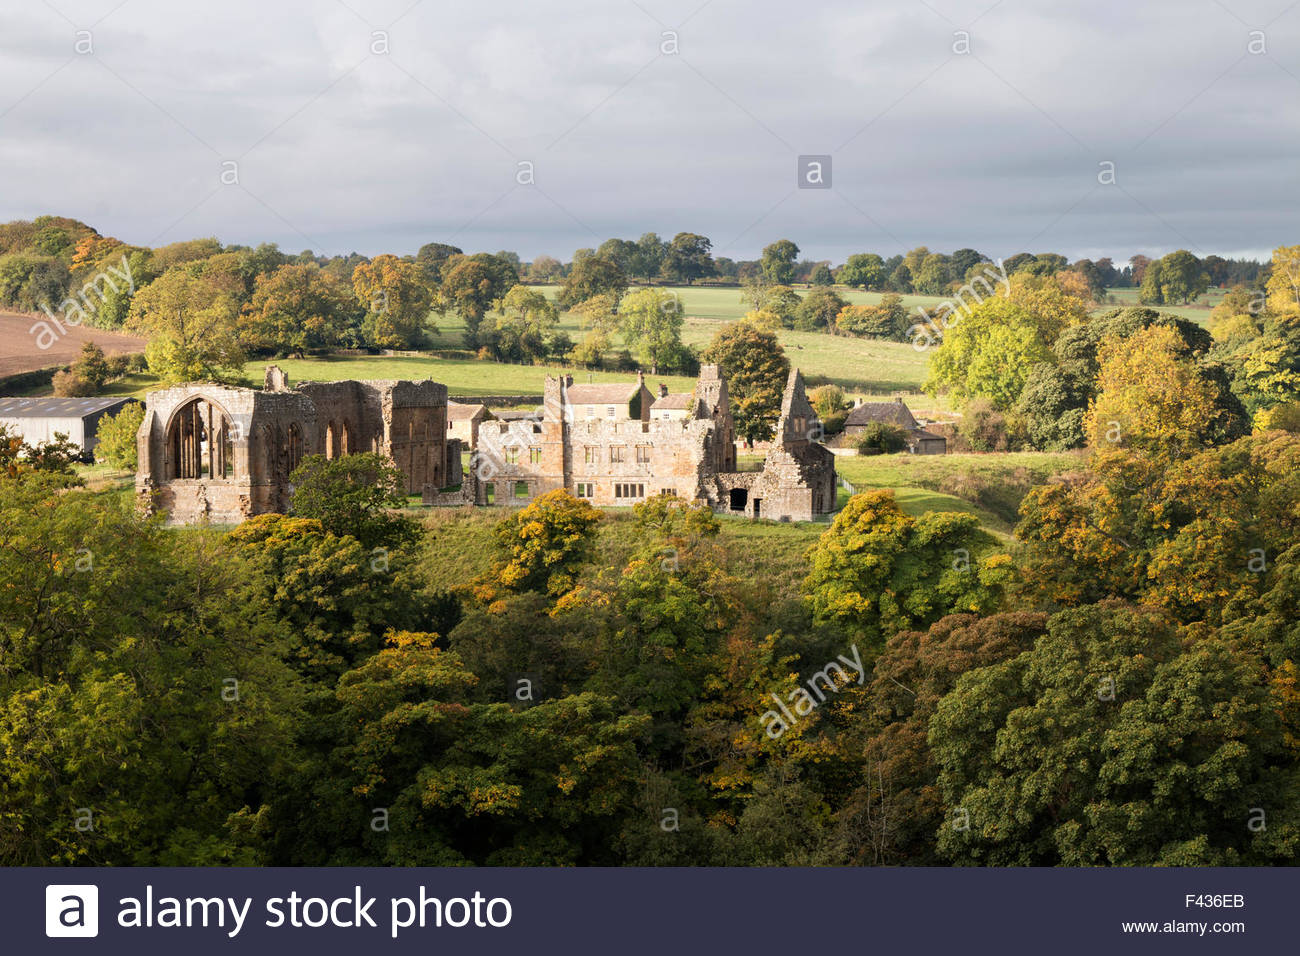 Barnard Castle, Co Durham, UK 14th October 2015. Breaking through a cloudy sky the sun lights up the vivid Autumn - Stock Image